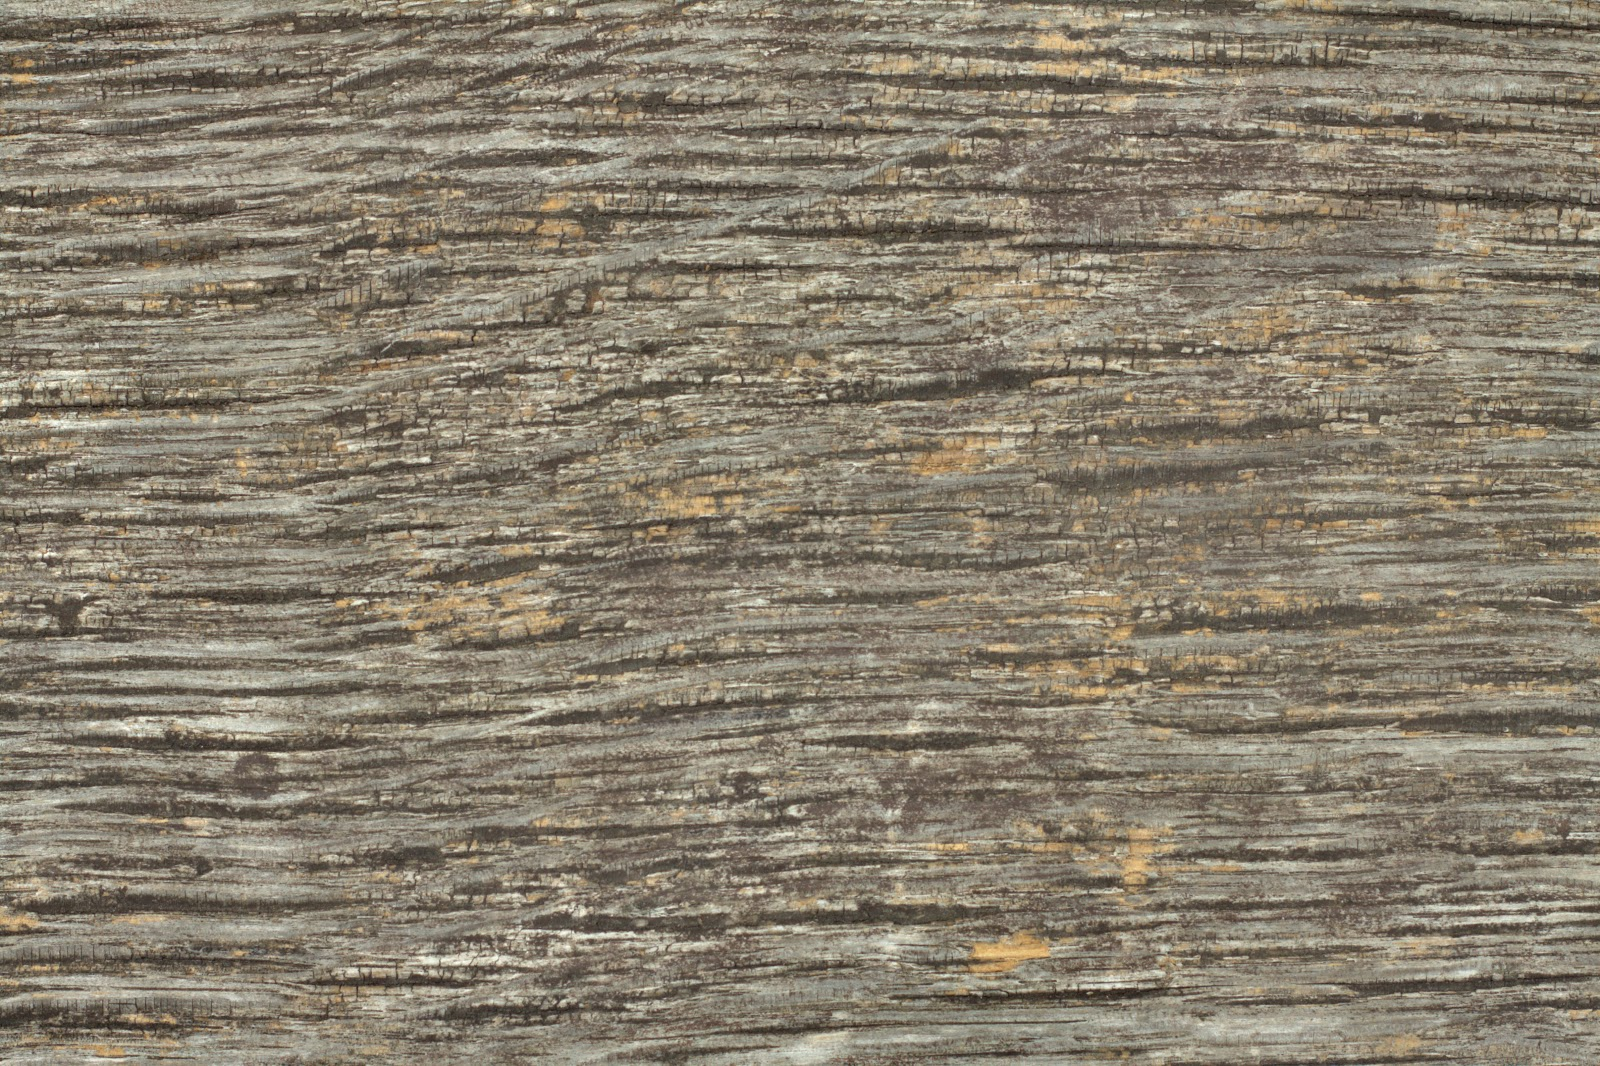 Wood dry cracked bench plank tree bark texture ver 10